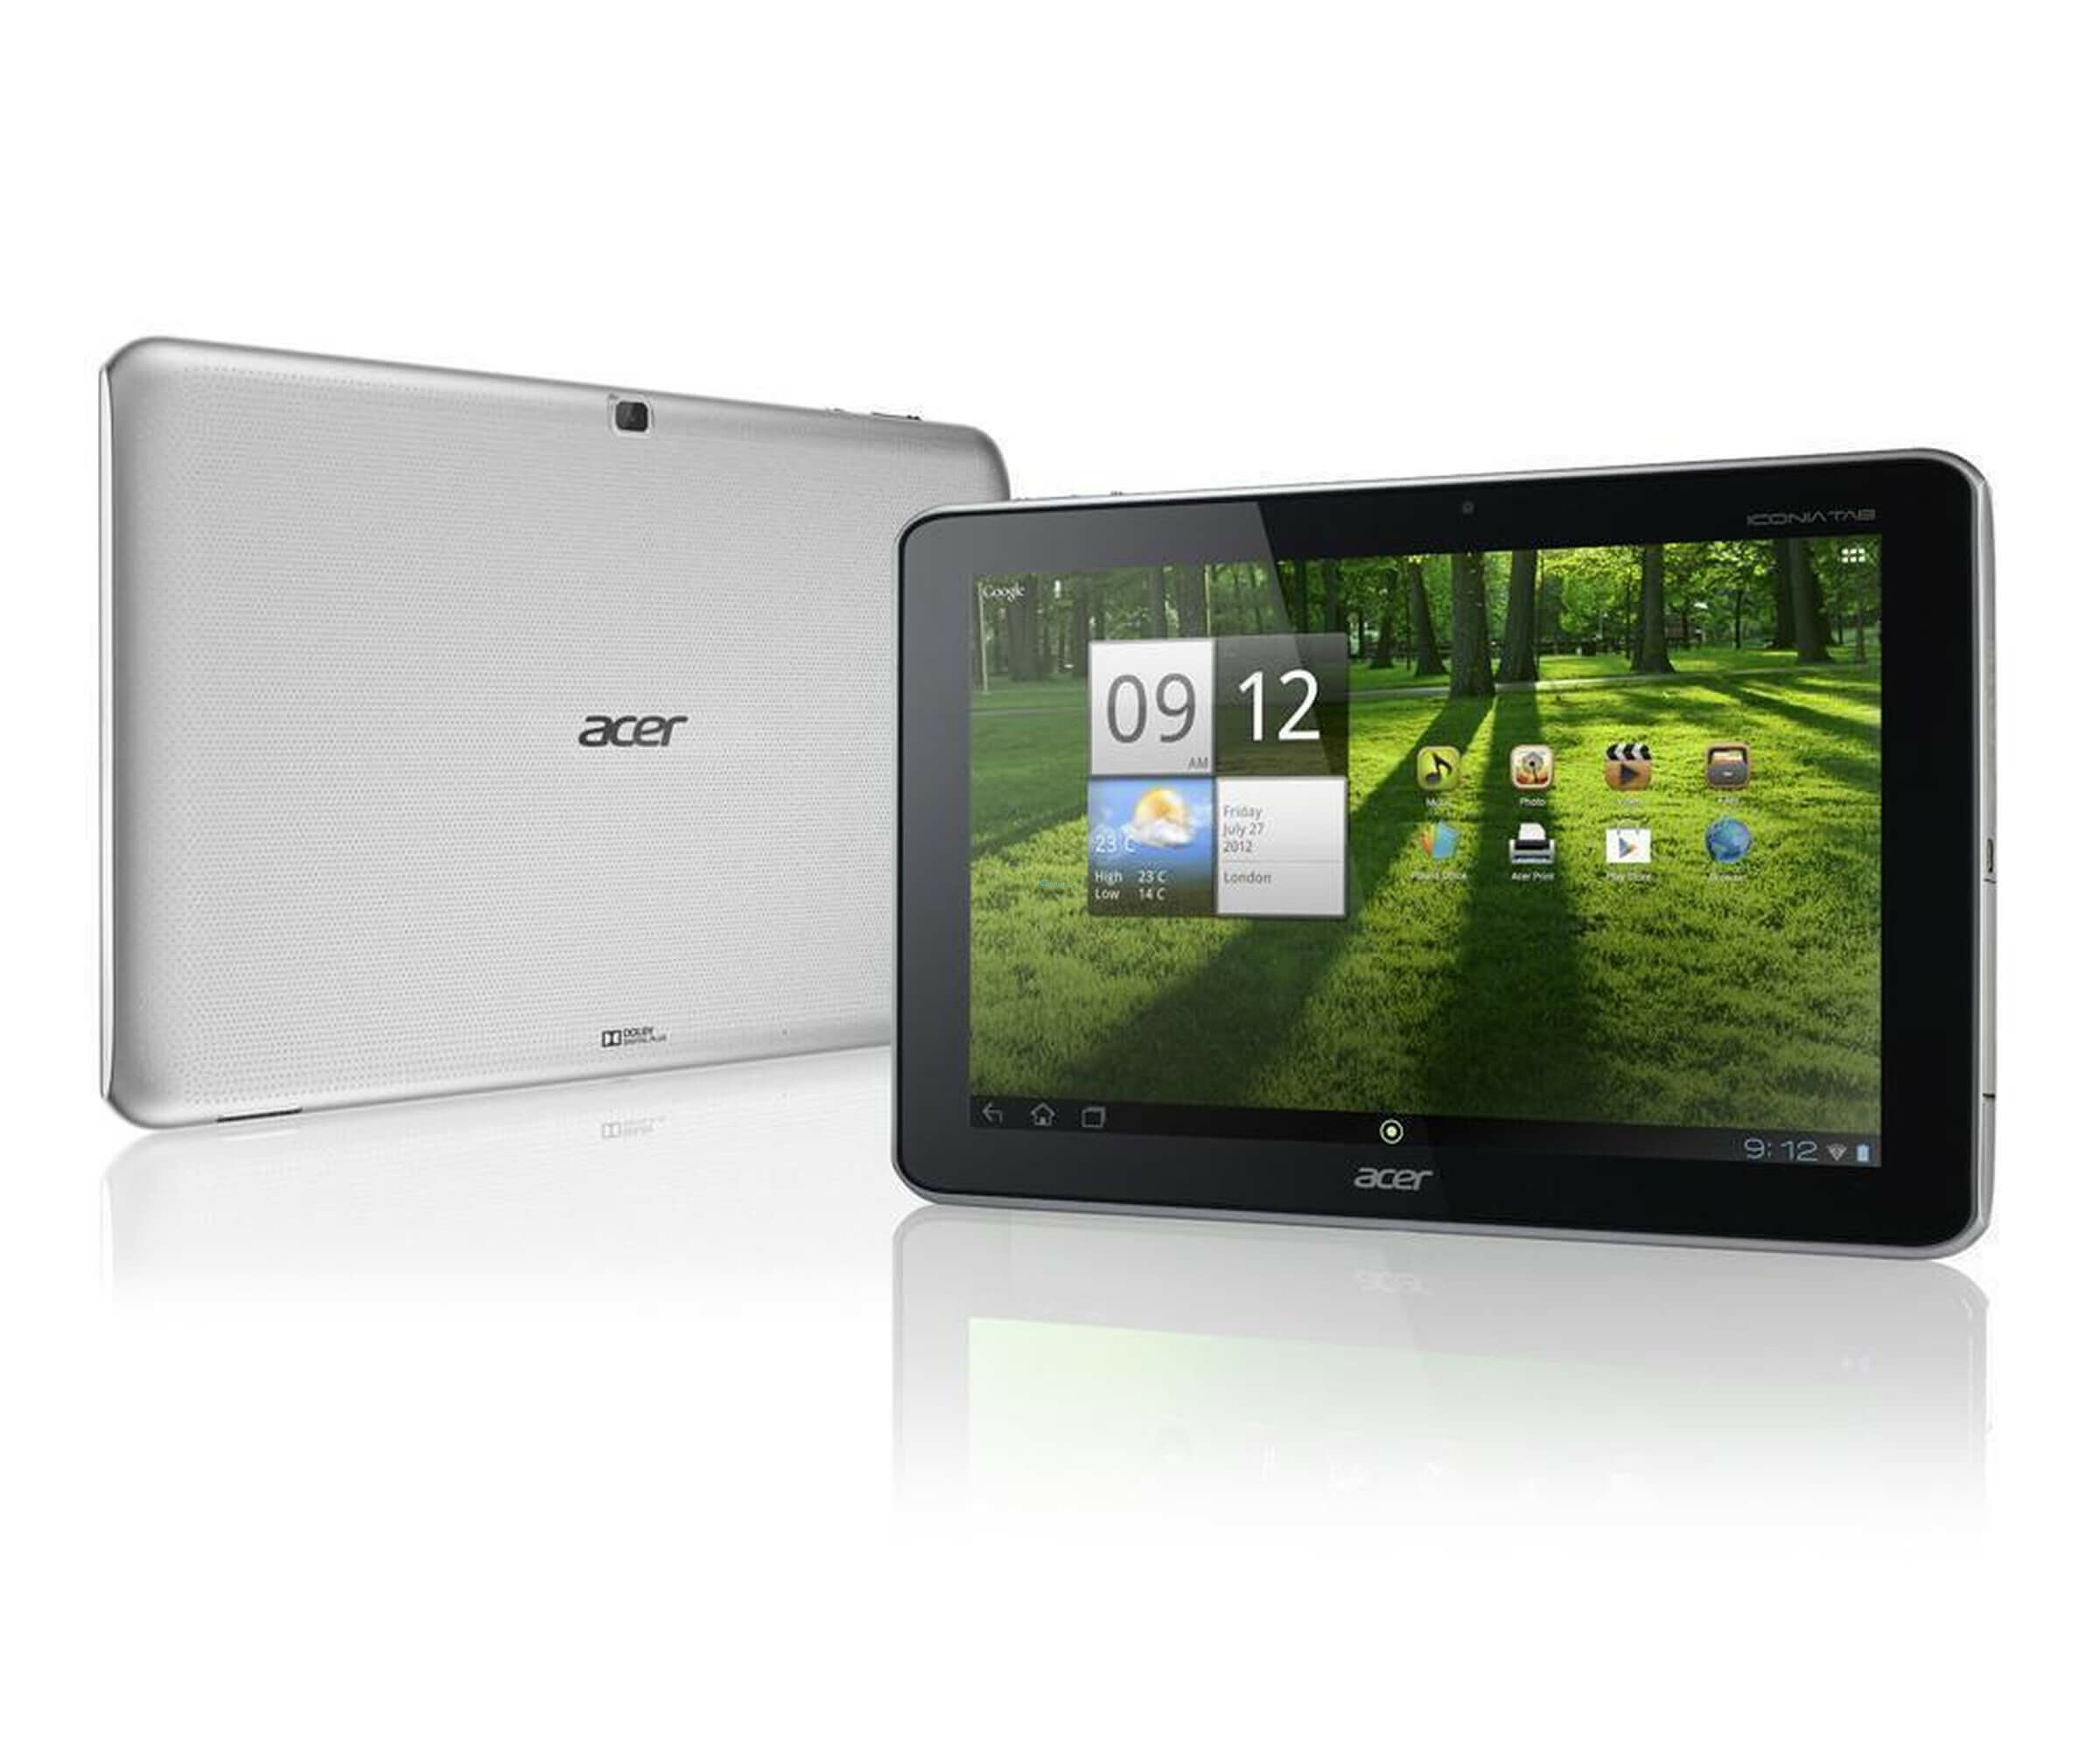 Tablets, Tablet PCs - Acer ICONIA Tab A700 Tablet Android 4.1.1 32 GB 25.7 cm ( 10.1' ) TFT ( 1920 x 1200 )  - Onlineshop Noteboox.de